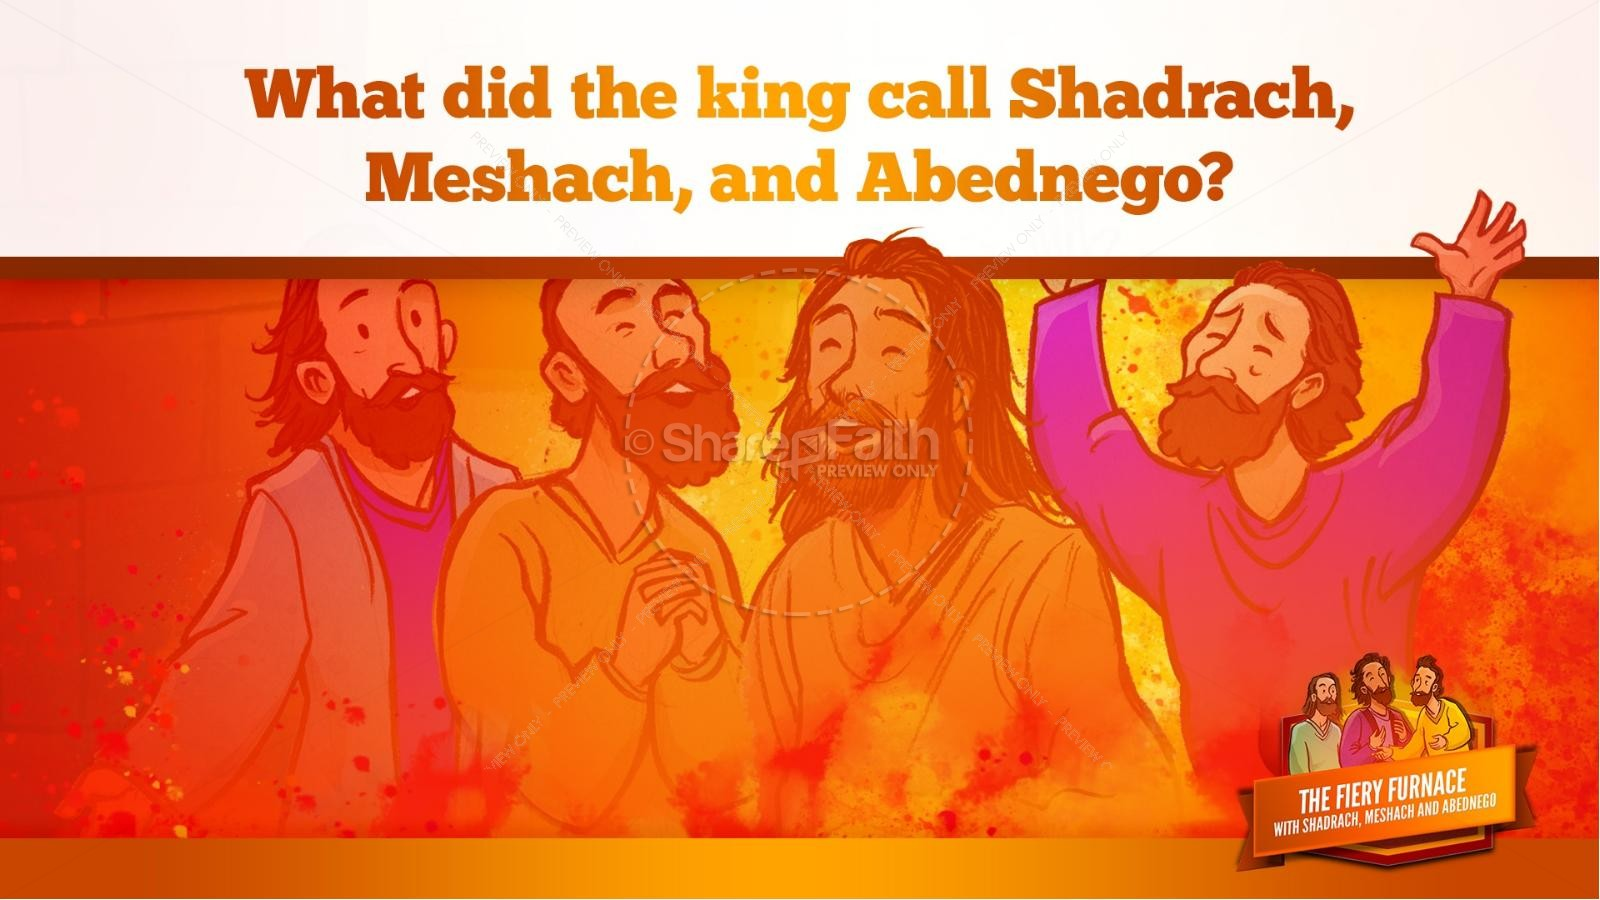 The Fiery Furnace with Shadrach